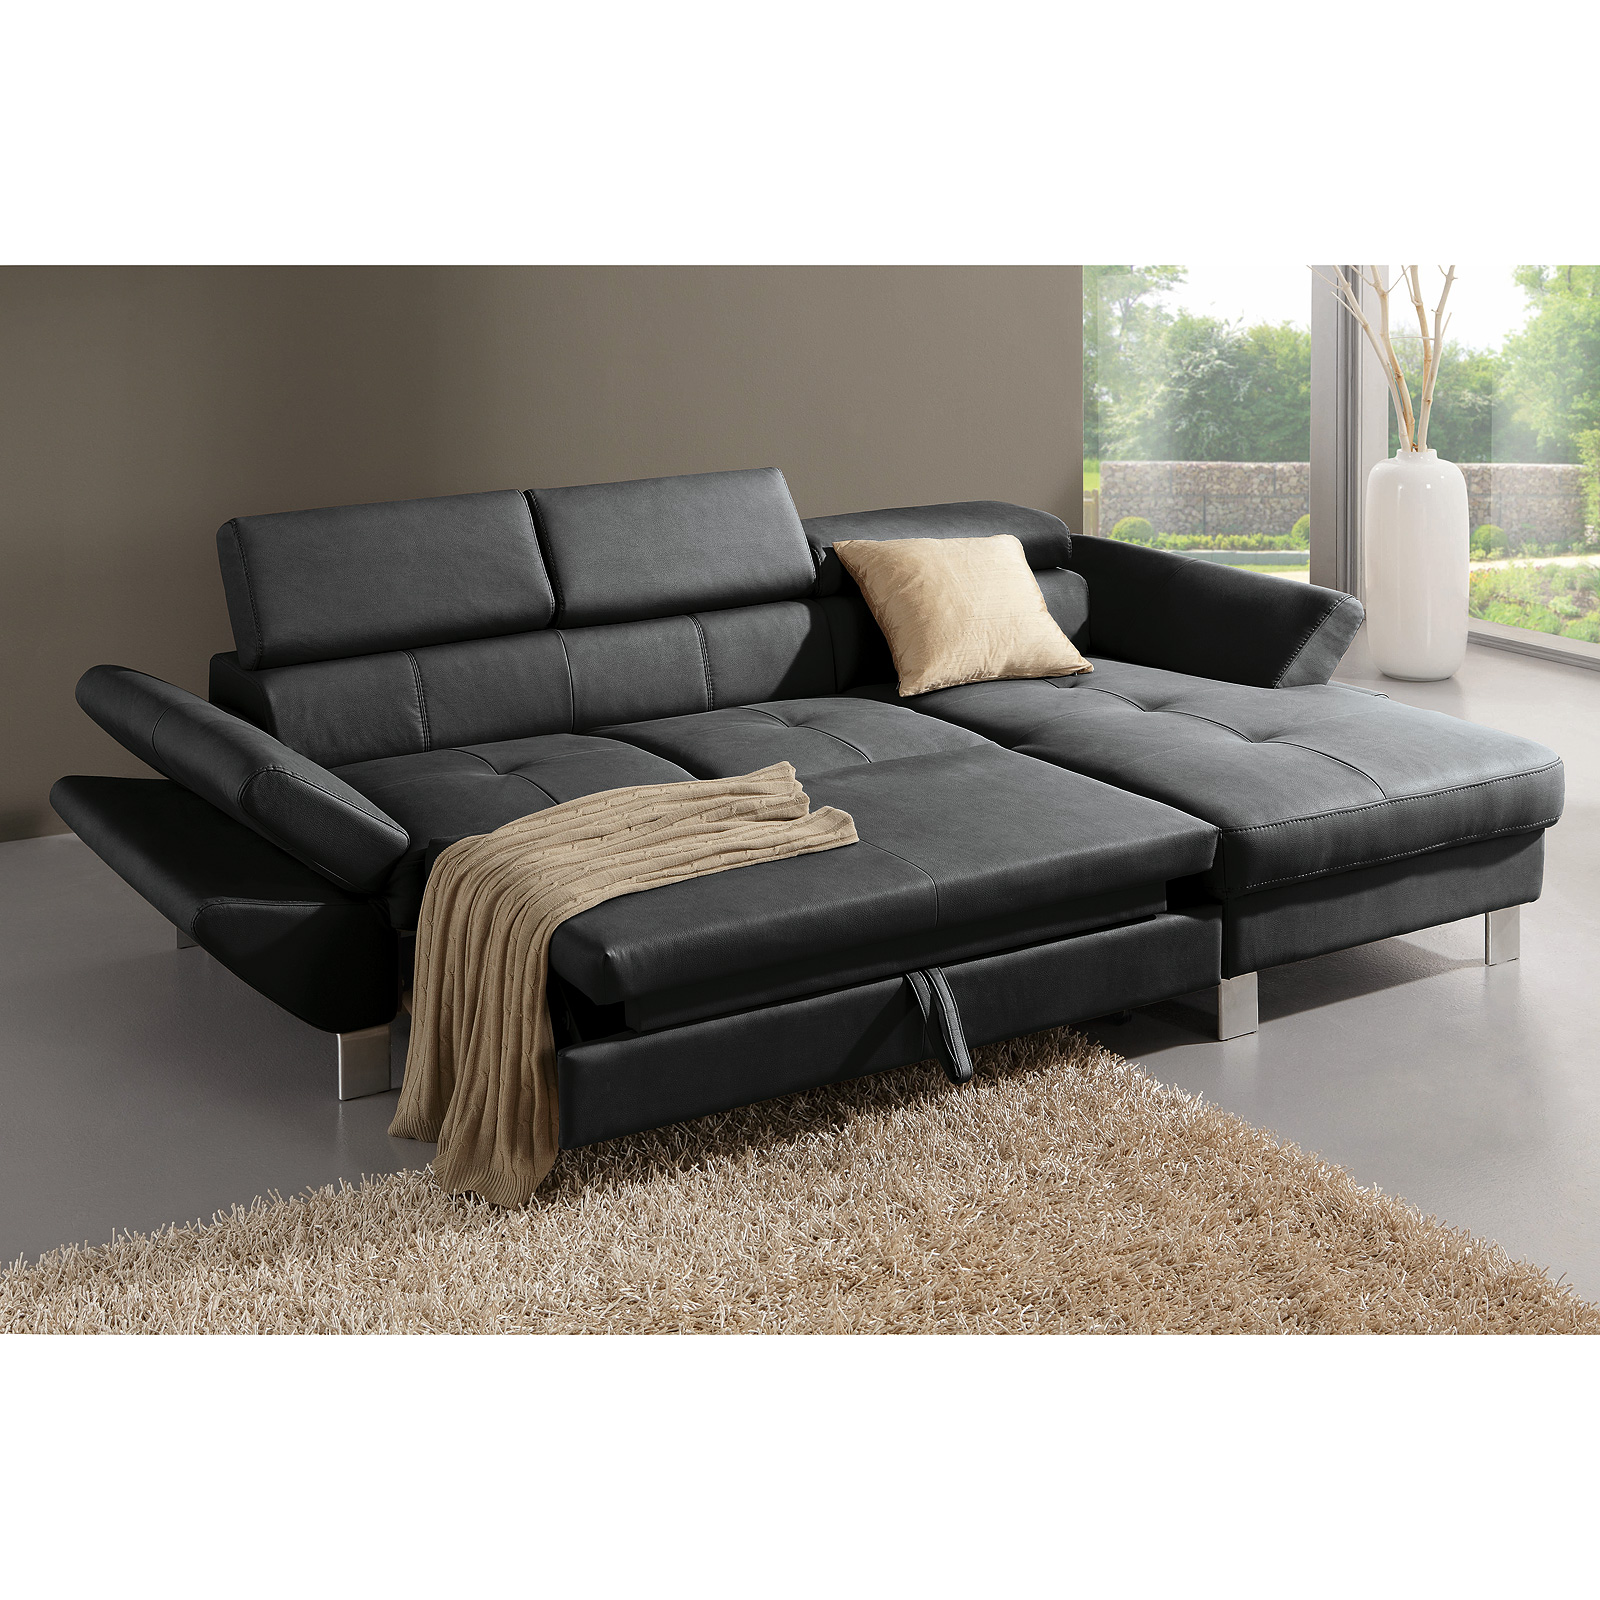 ecksofa carrier sofa wohnlandschaft polsterecke in schwarz. Black Bedroom Furniture Sets. Home Design Ideas